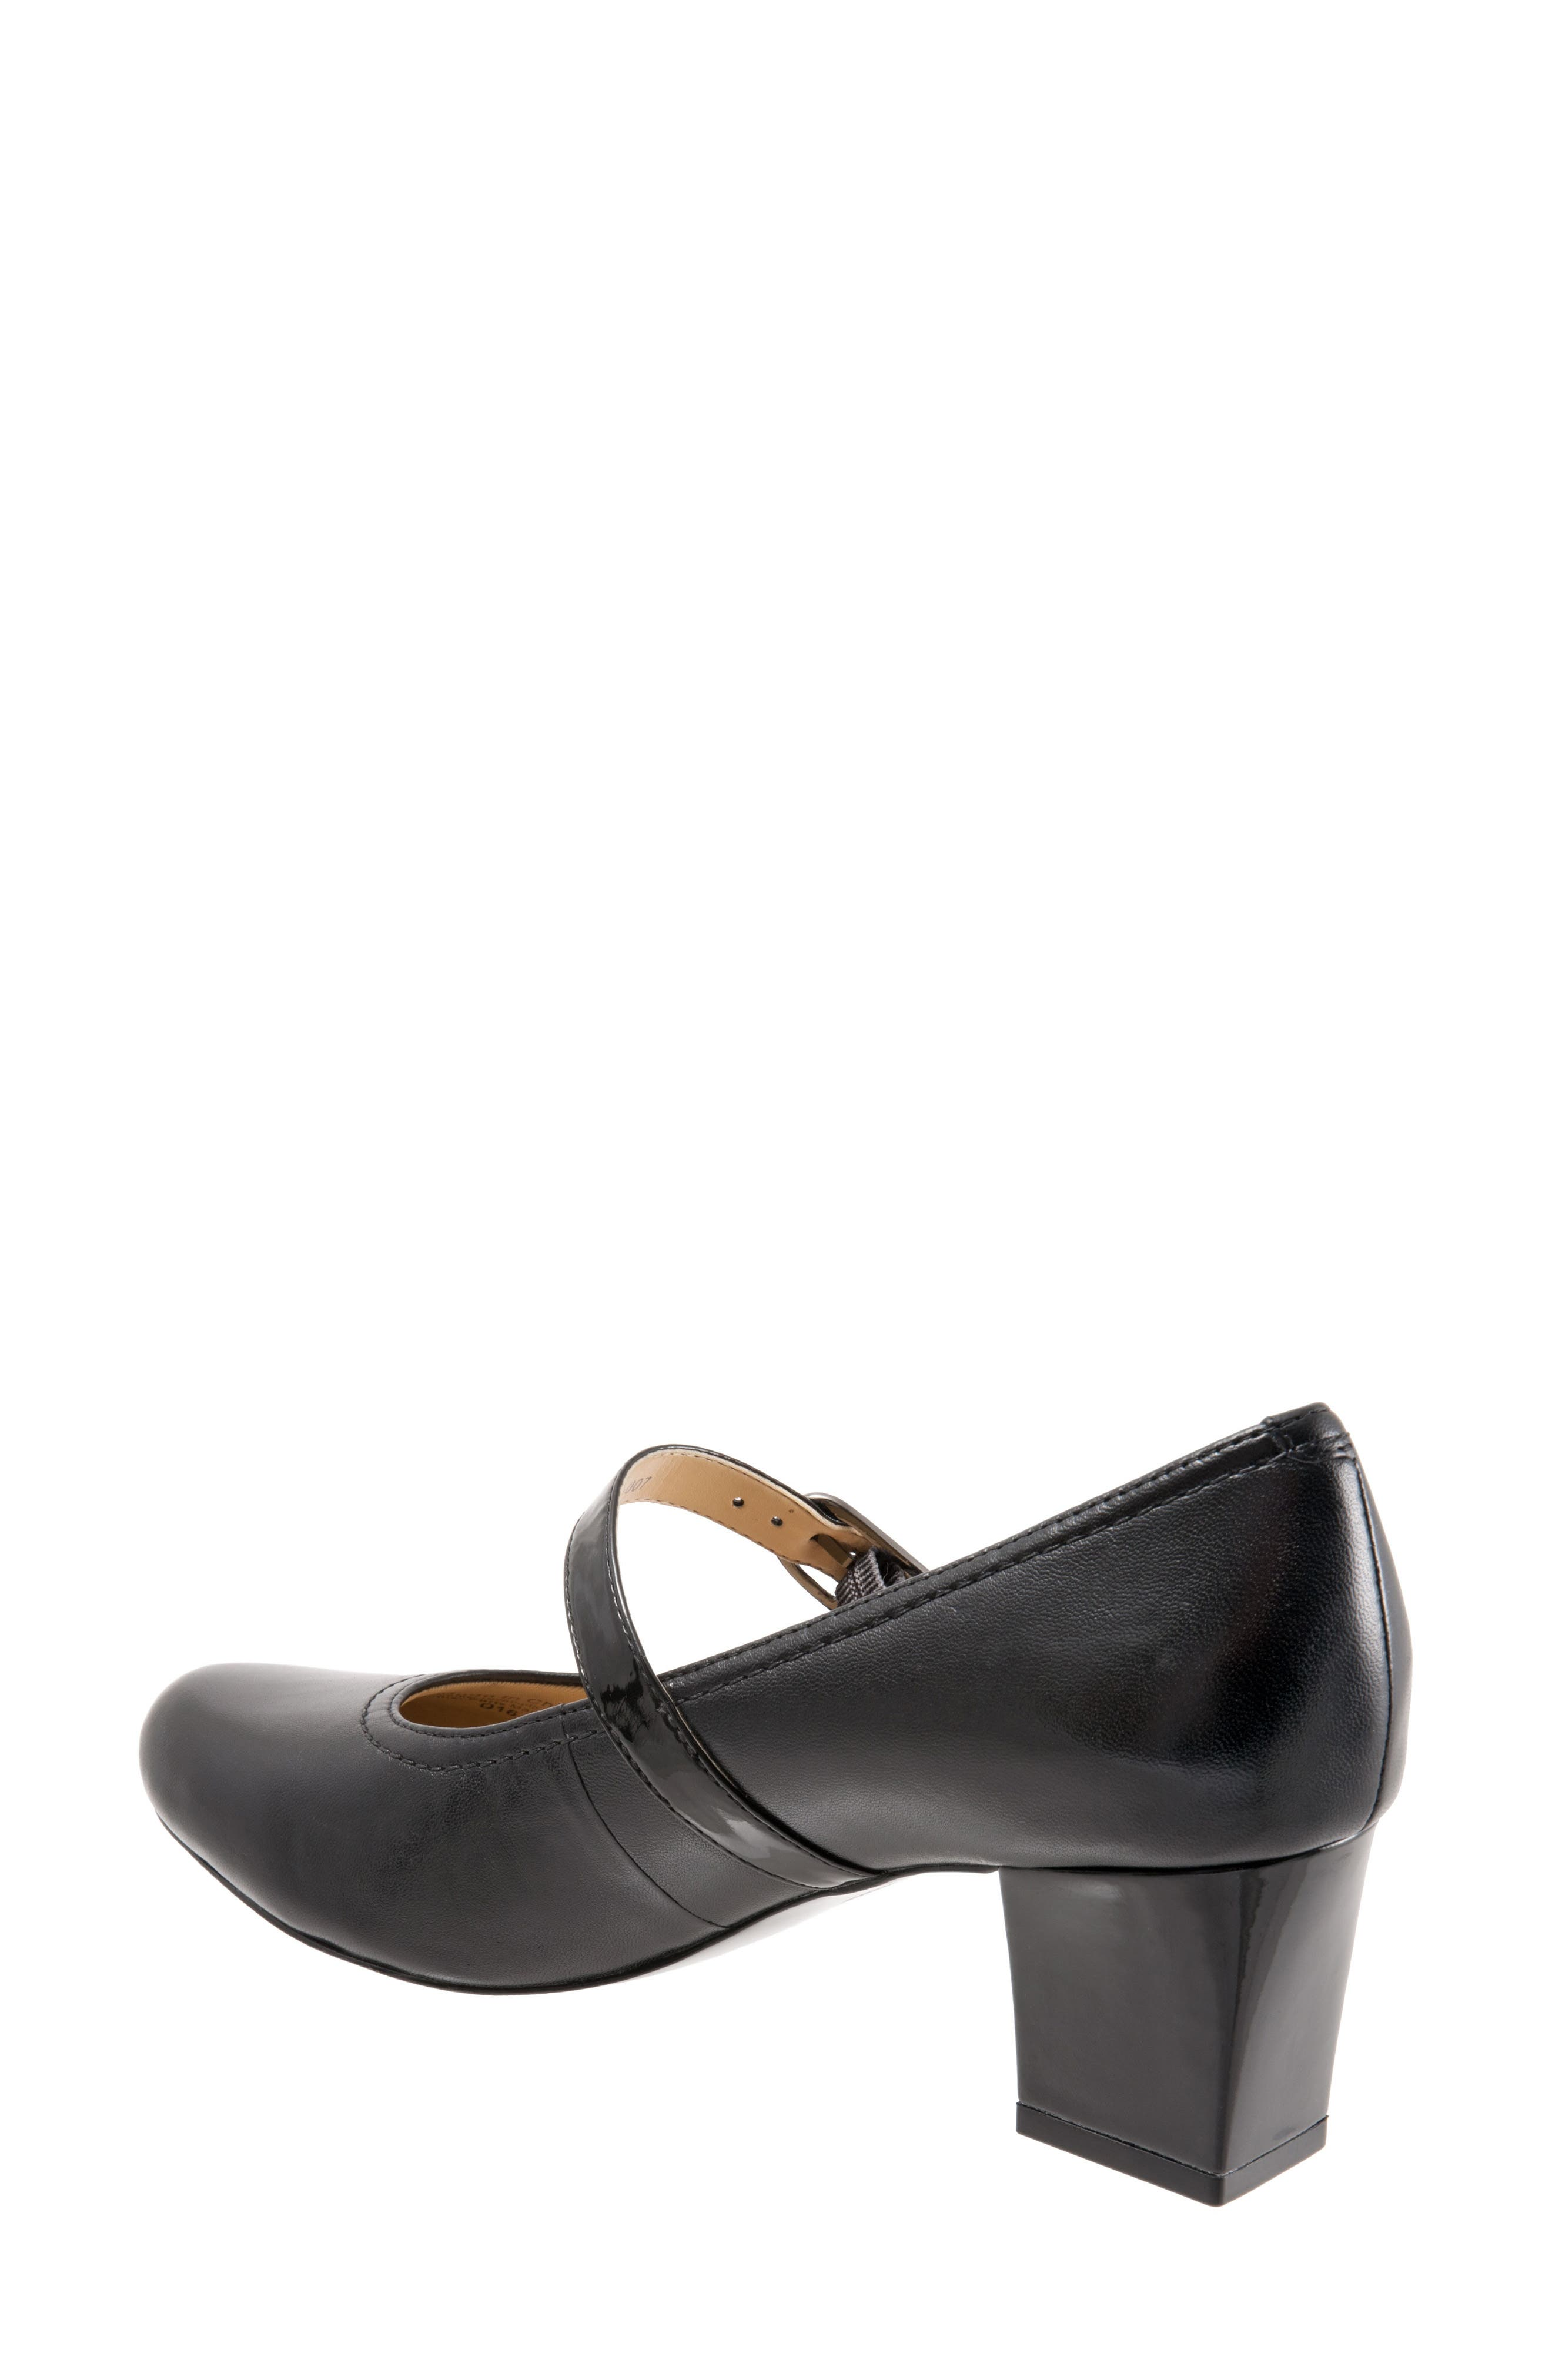 'Candice' Mary Jane Pump,                             Alternate thumbnail 4, color,                             BLACK LEATHER